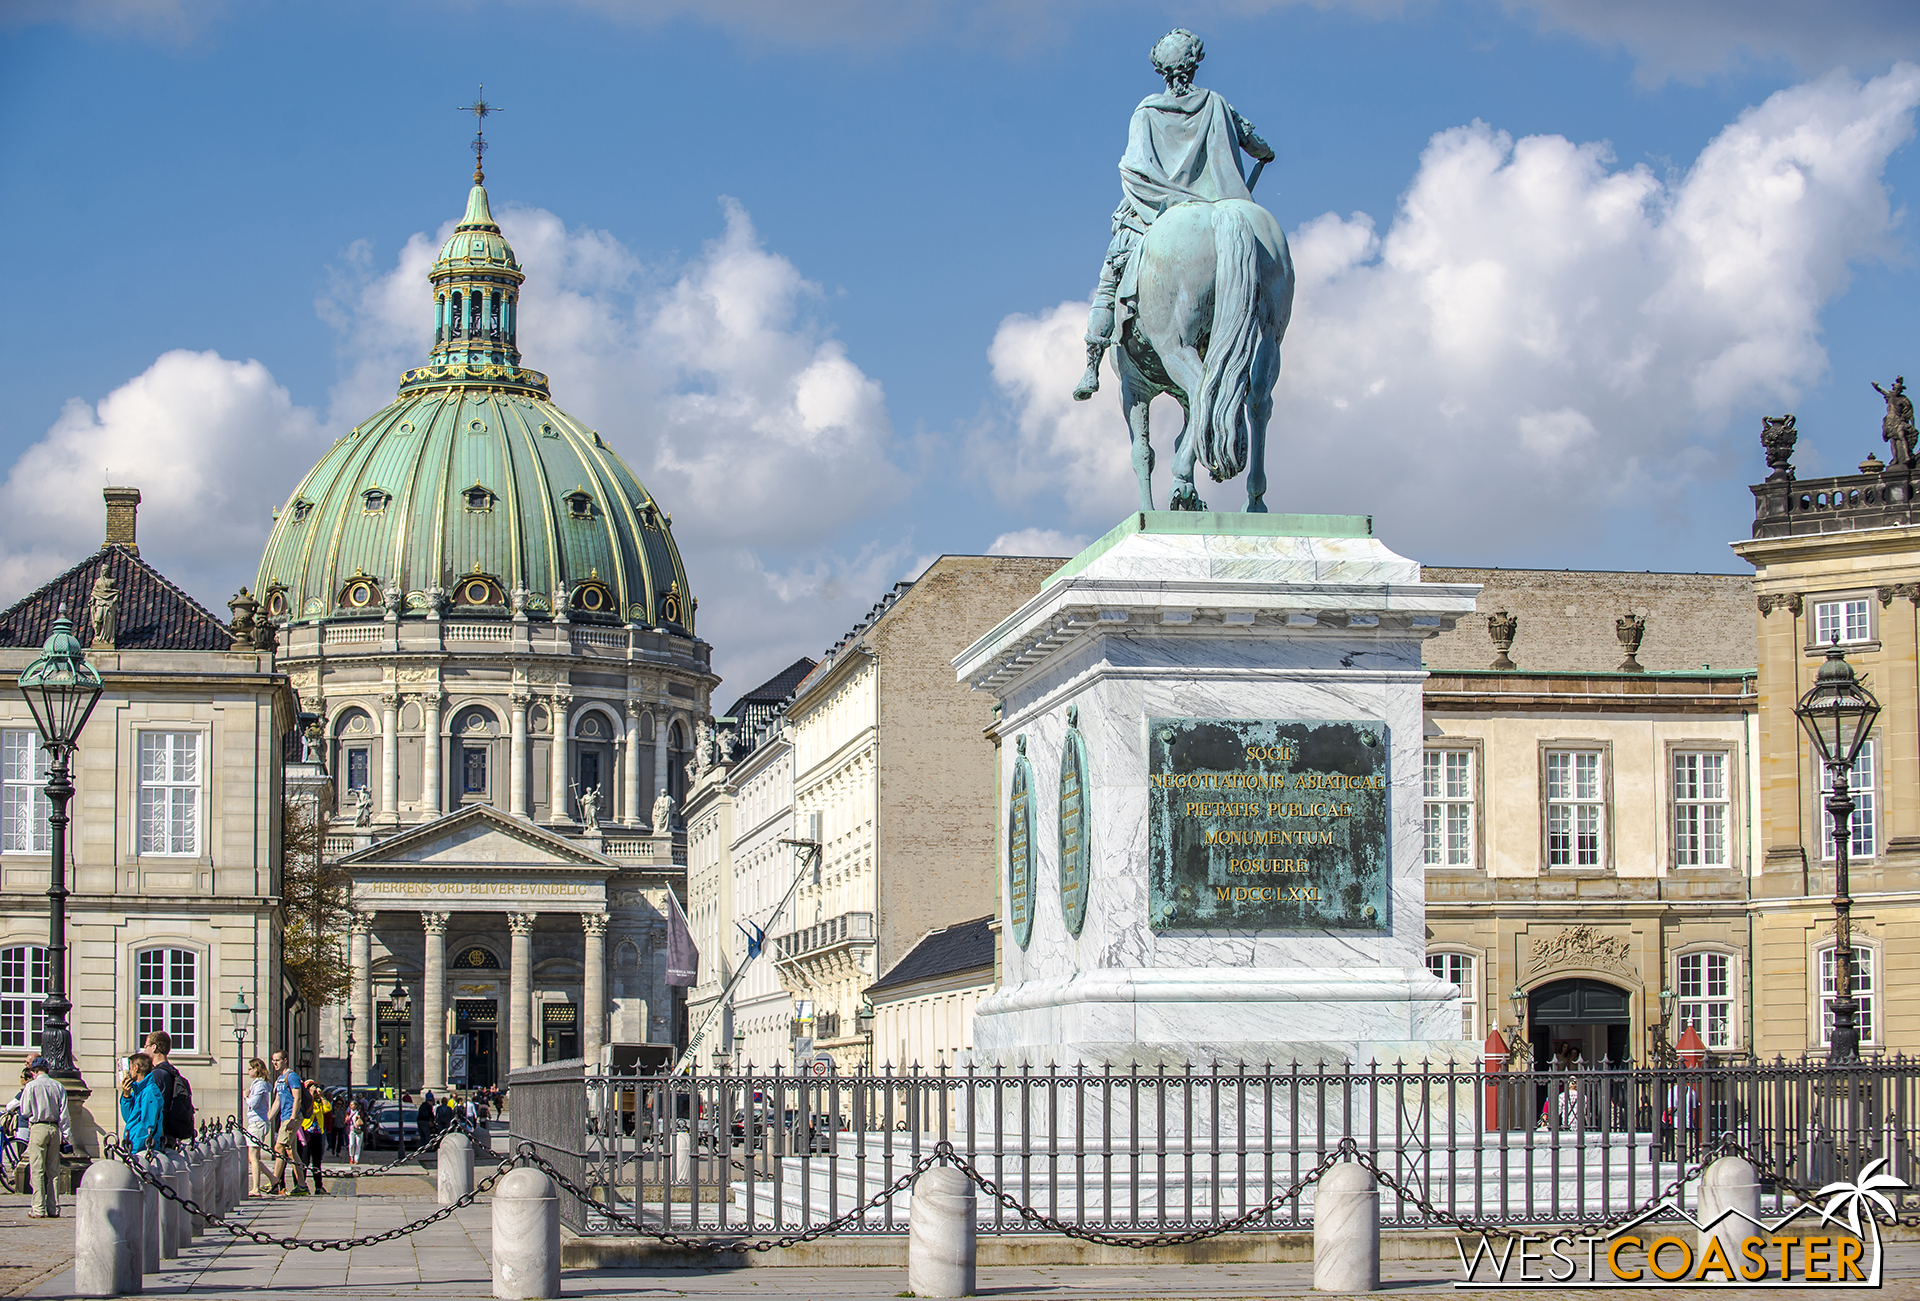 Amalienborg Plaza is the center of the Amalienborg Palace complex, home to the royal family. In this view, the towering Marble Church can also be seen in the background.